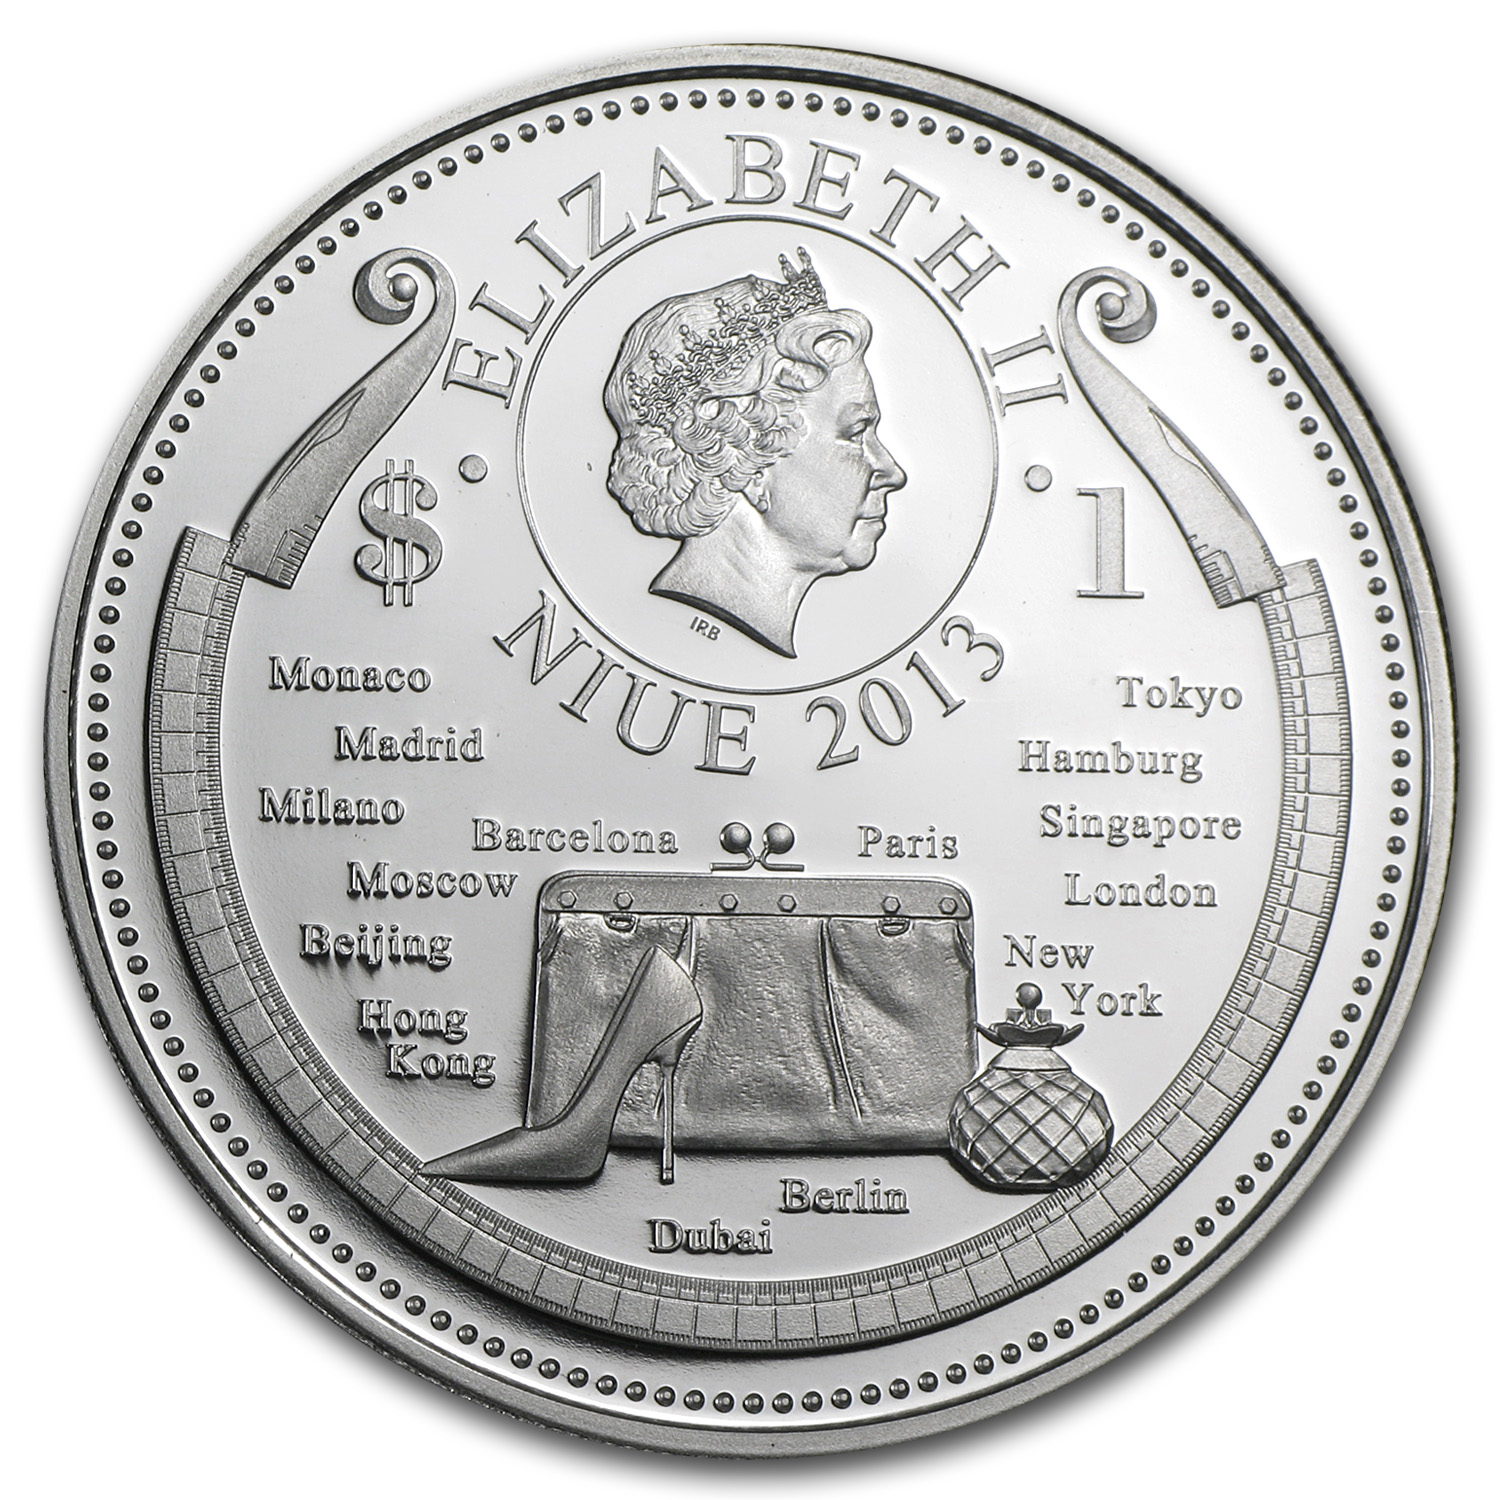 2013 Niue Proof $1 Fashion World Wedding